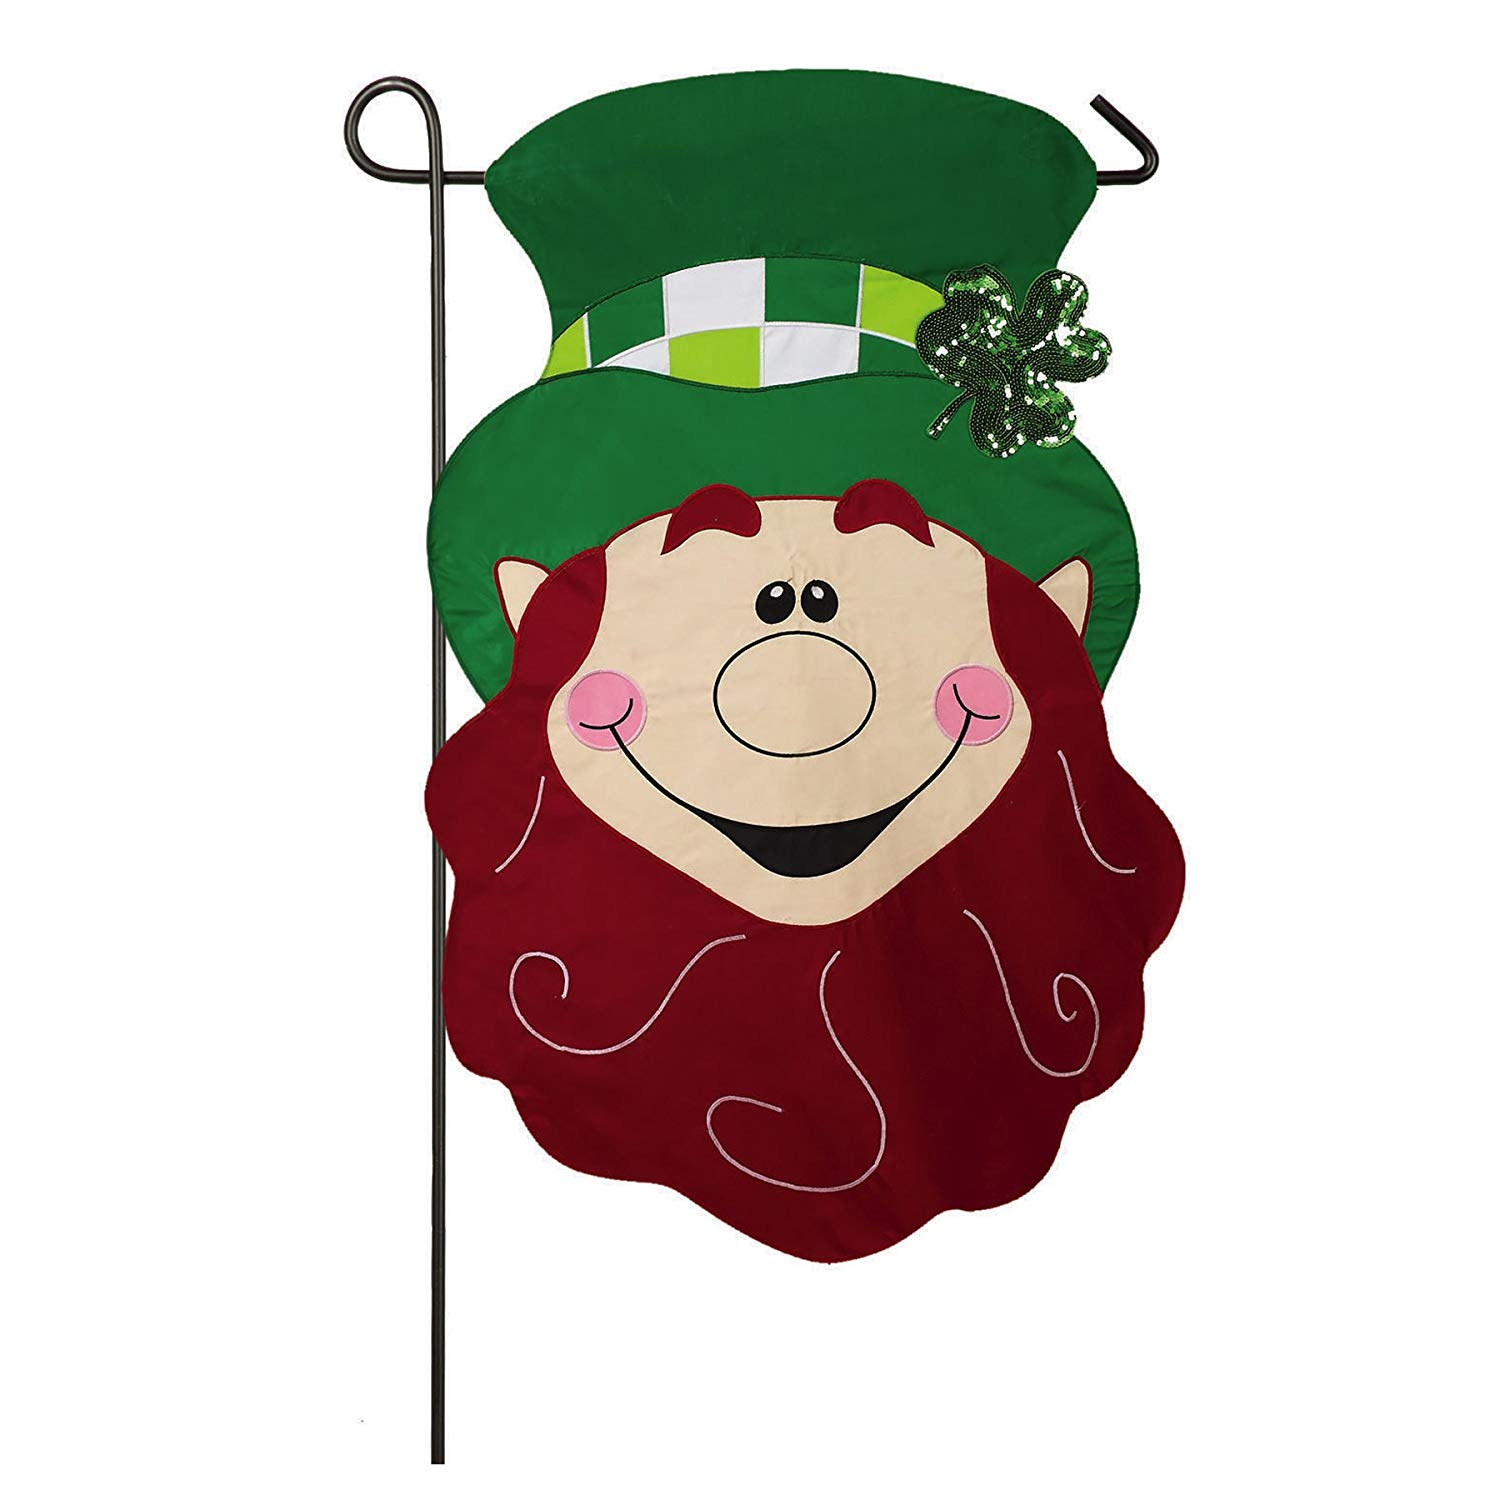 28 Inch St. Patricks Day US Garden Flag - St. Patty Leprechaun